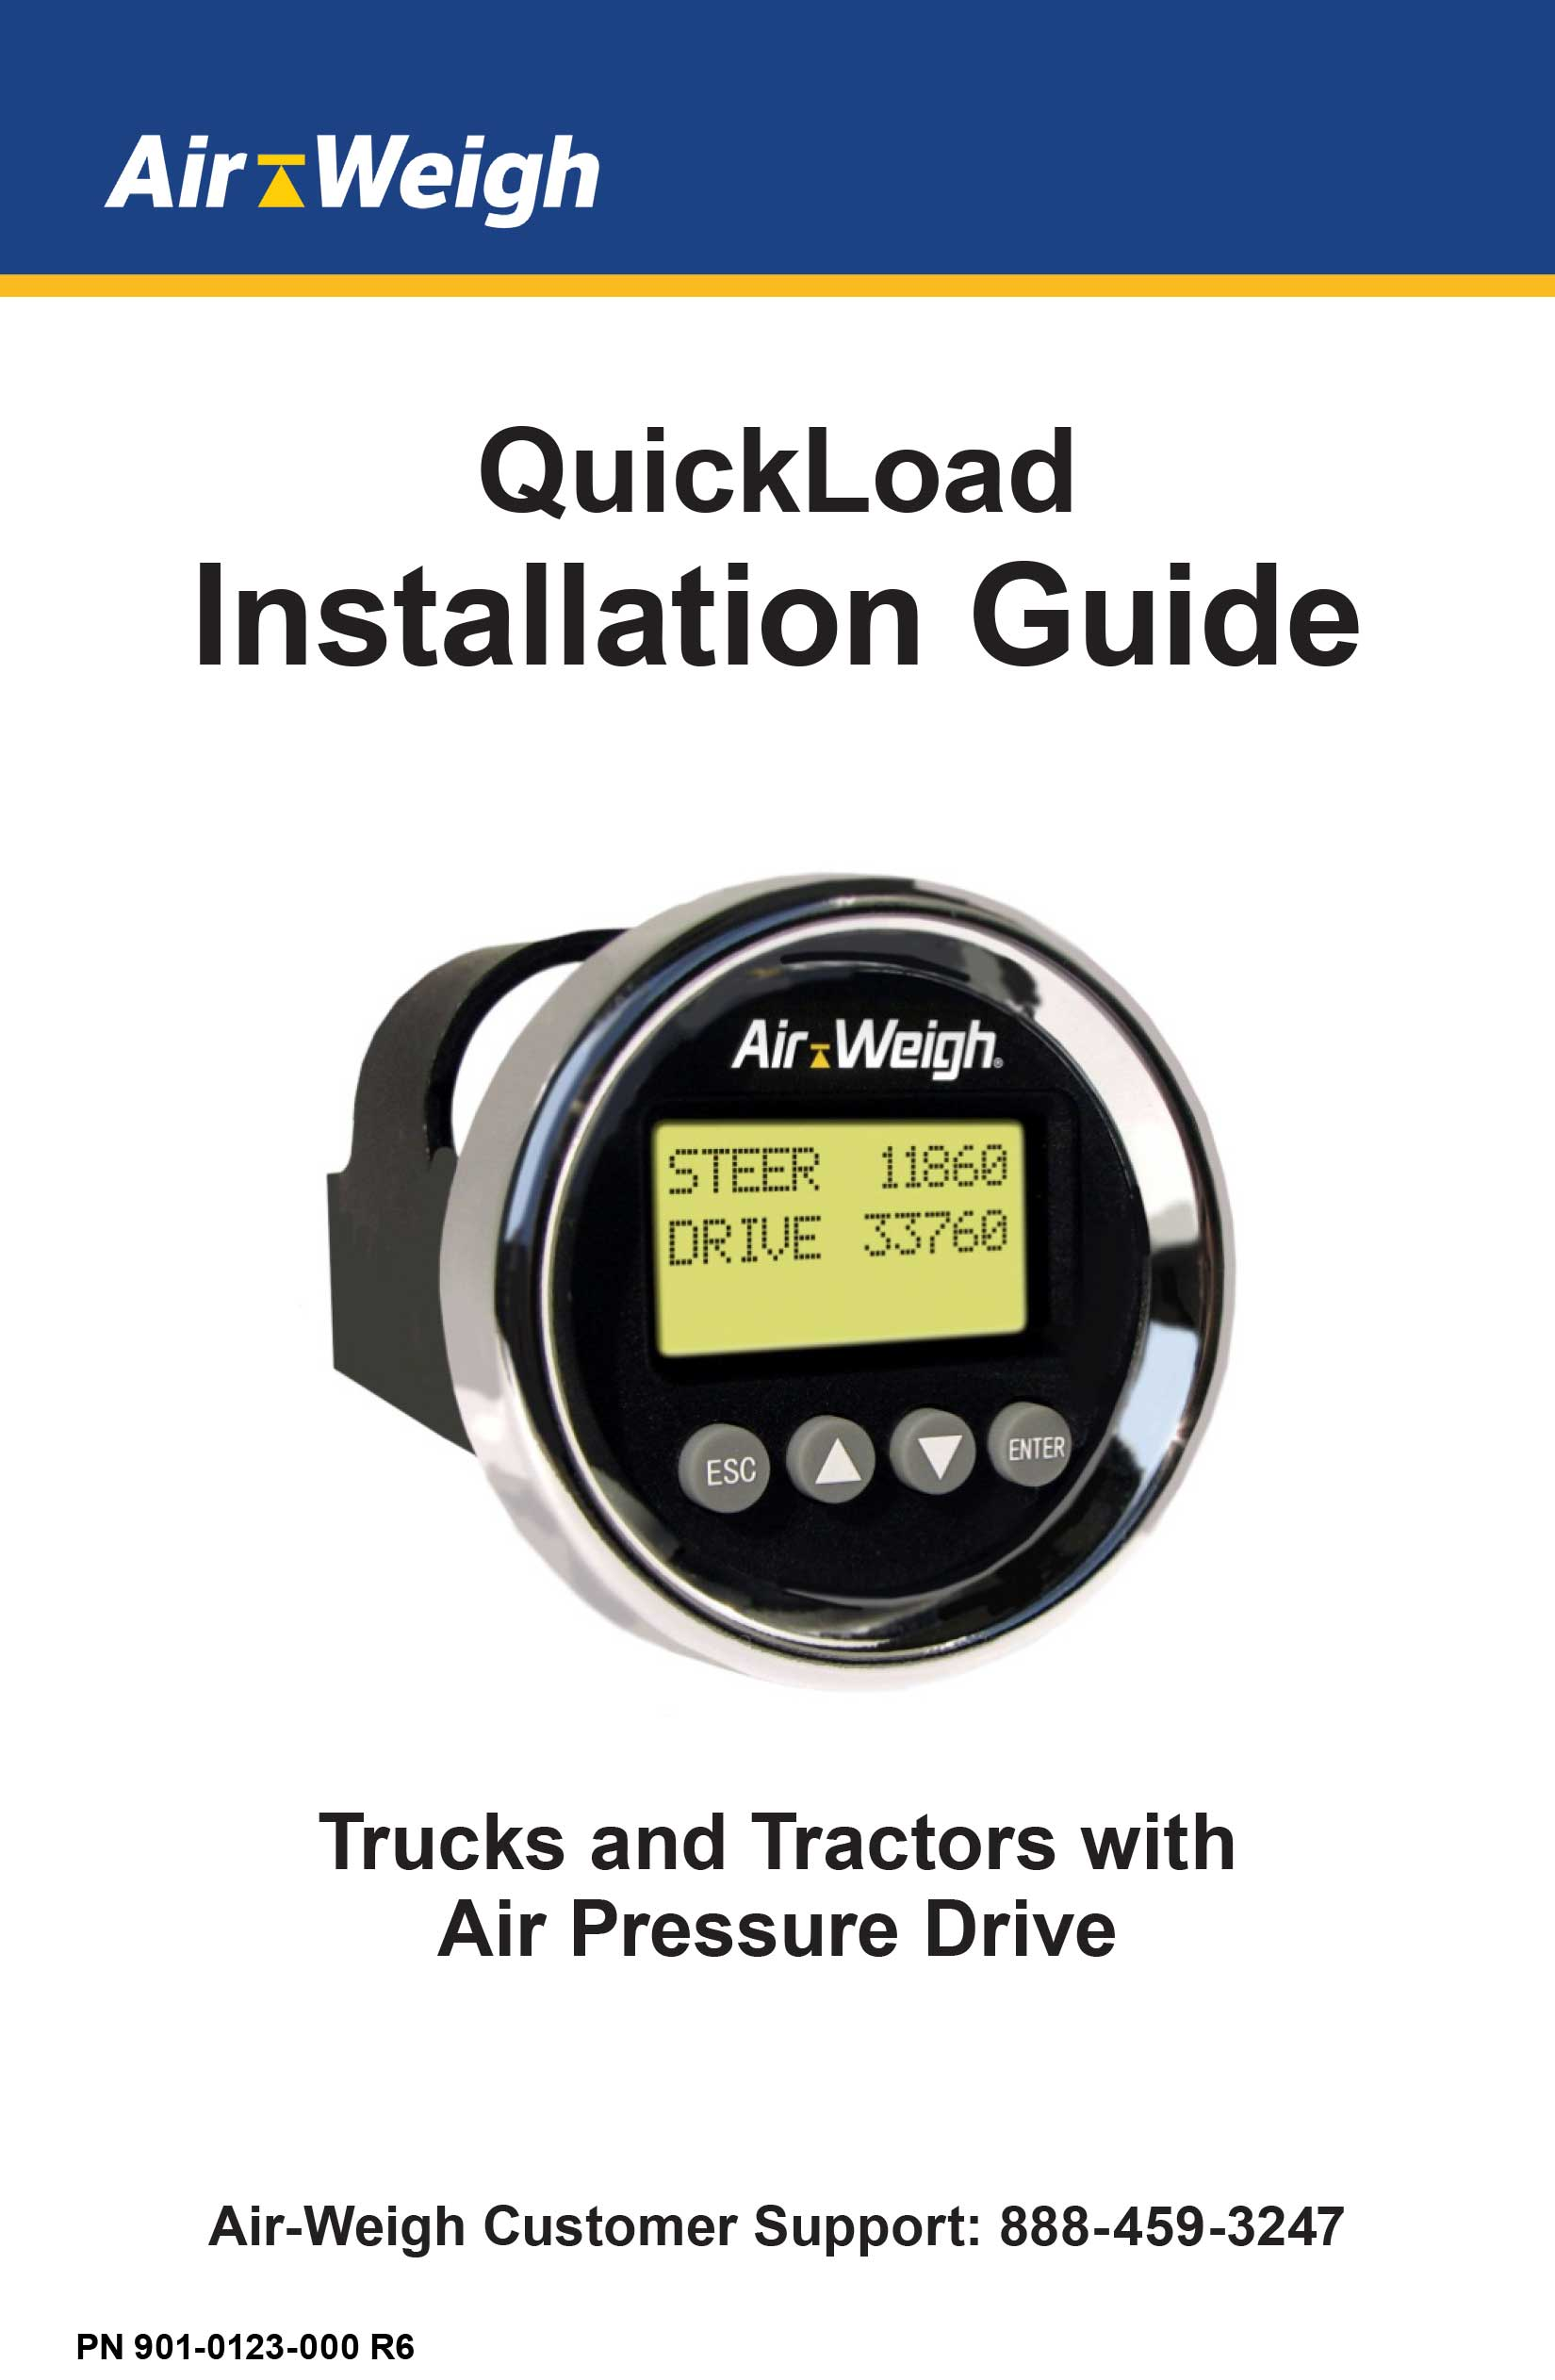 QuickLoad Installation Guide for Trucks and Trailers with Air Pressure Drive